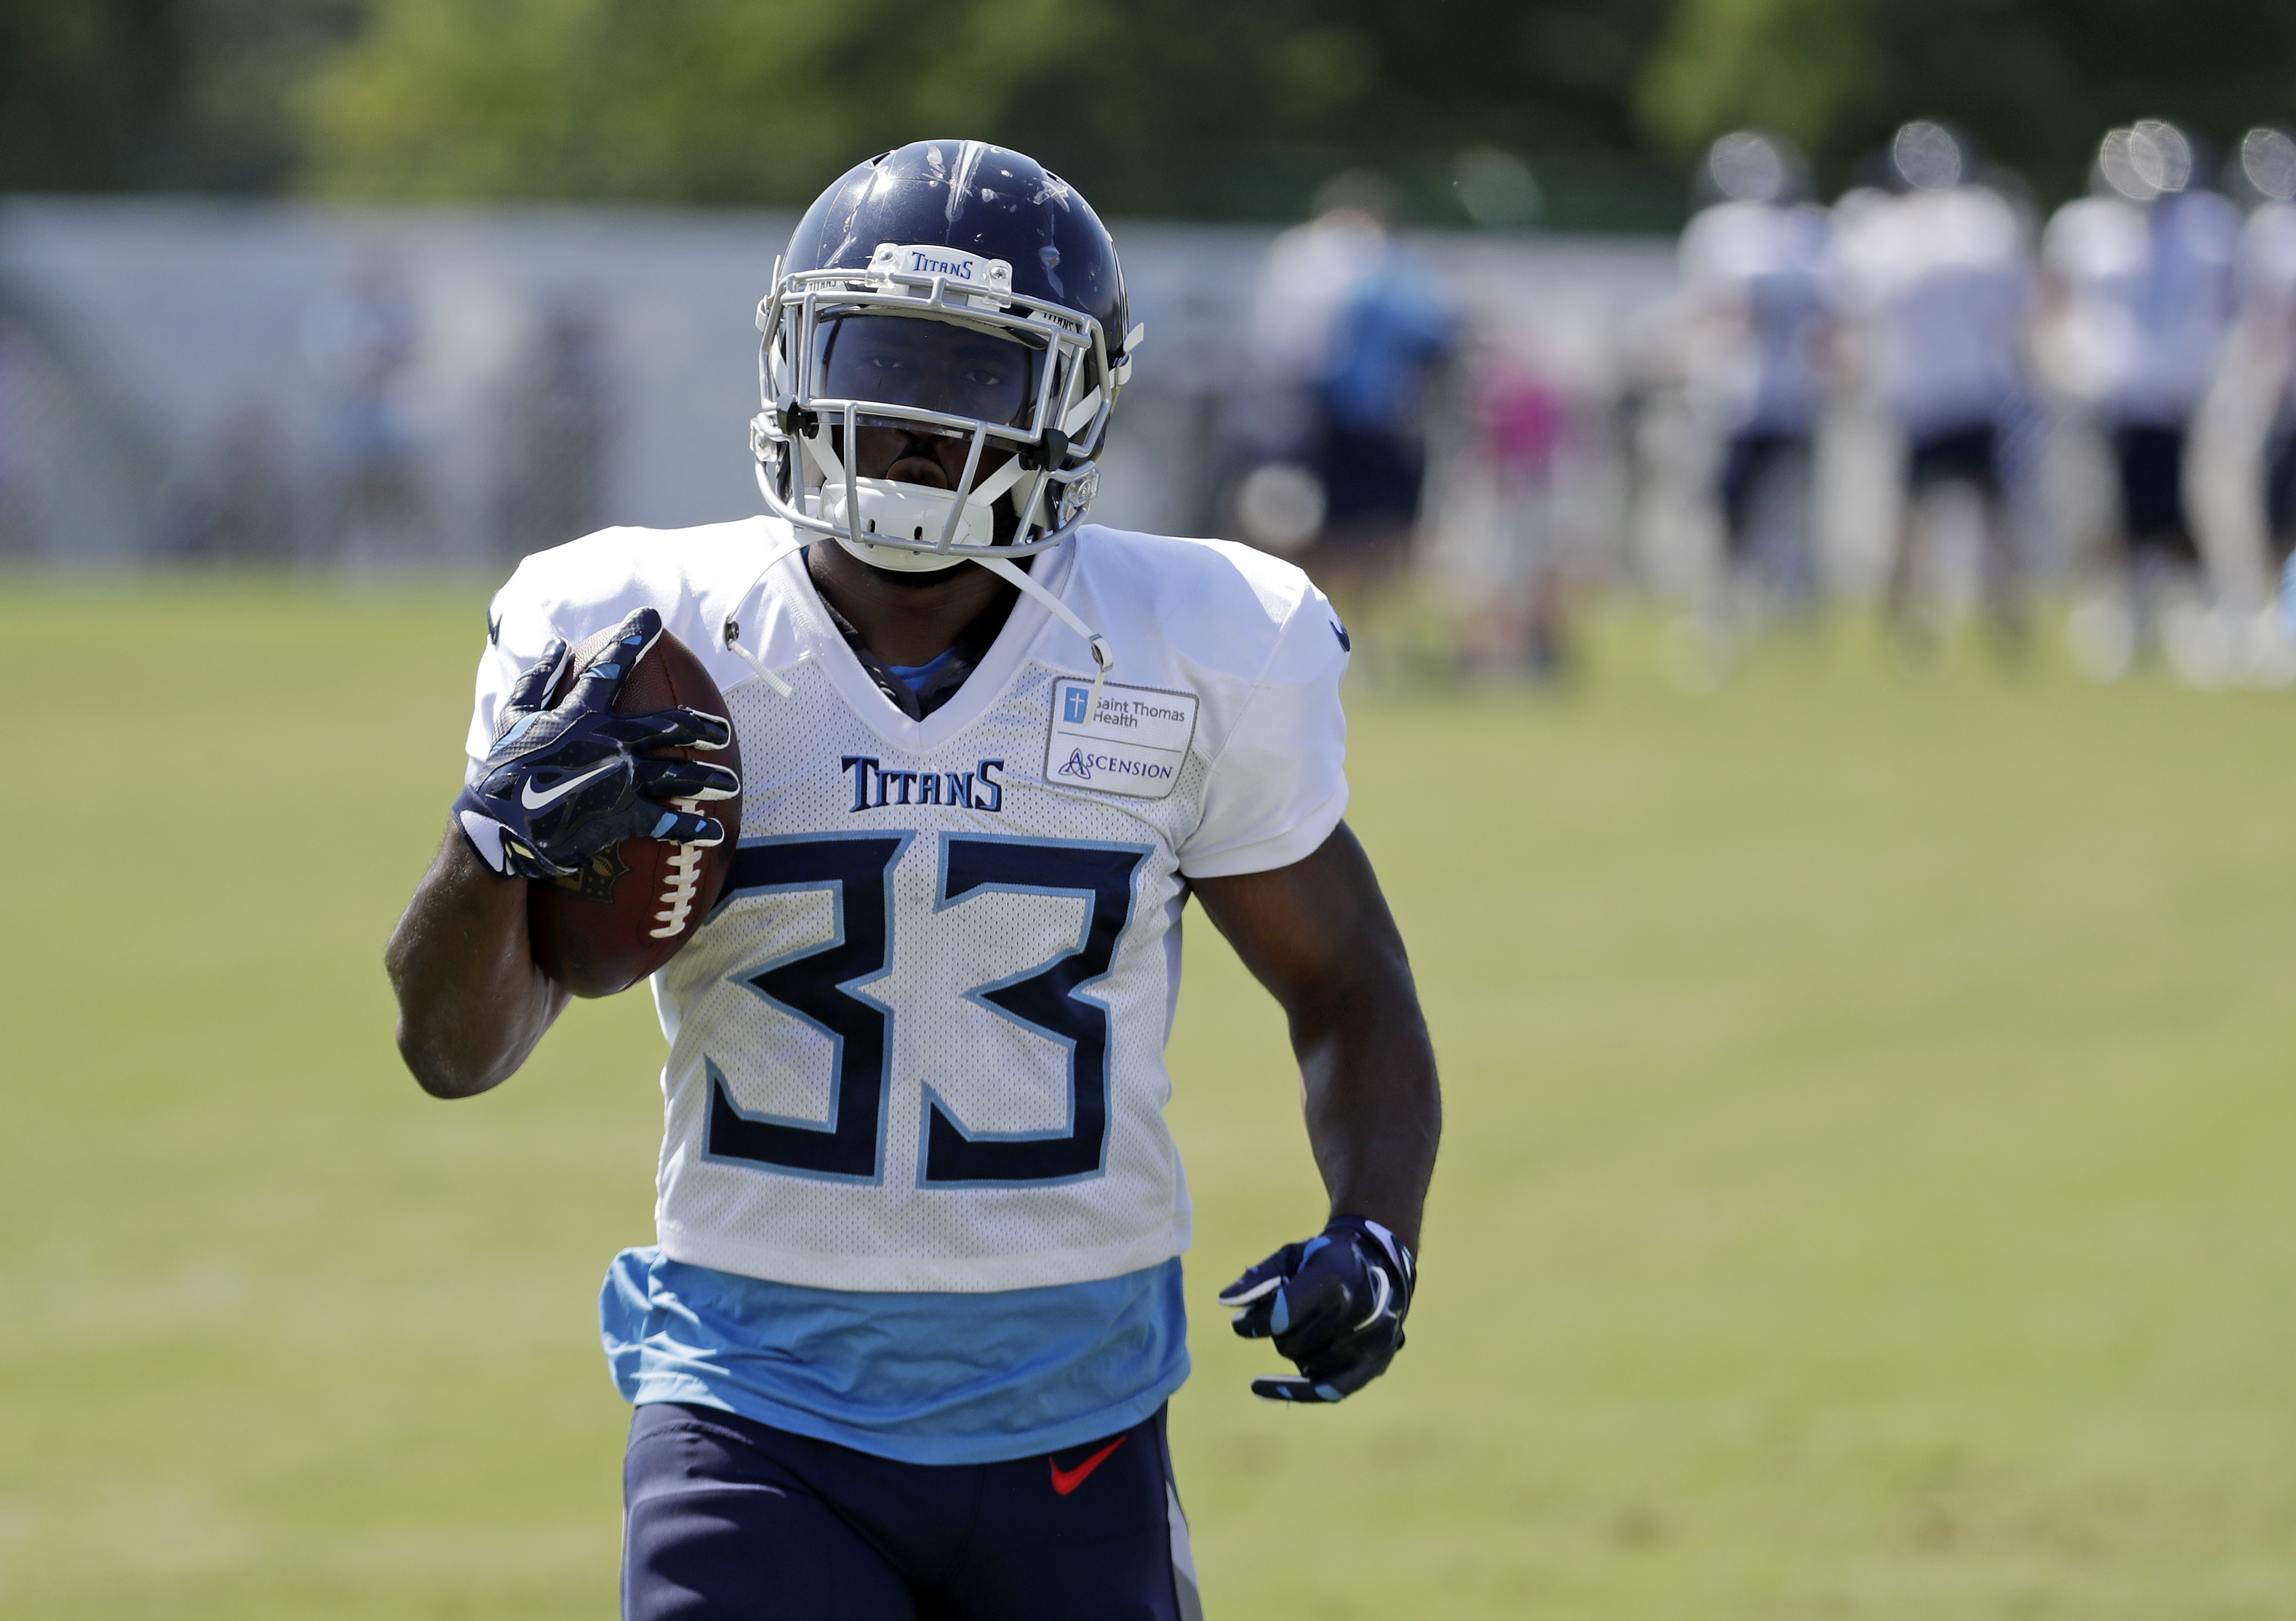 516e8b23 Catching up with the Titans, a.k.a. the Patriots of the South - The ...